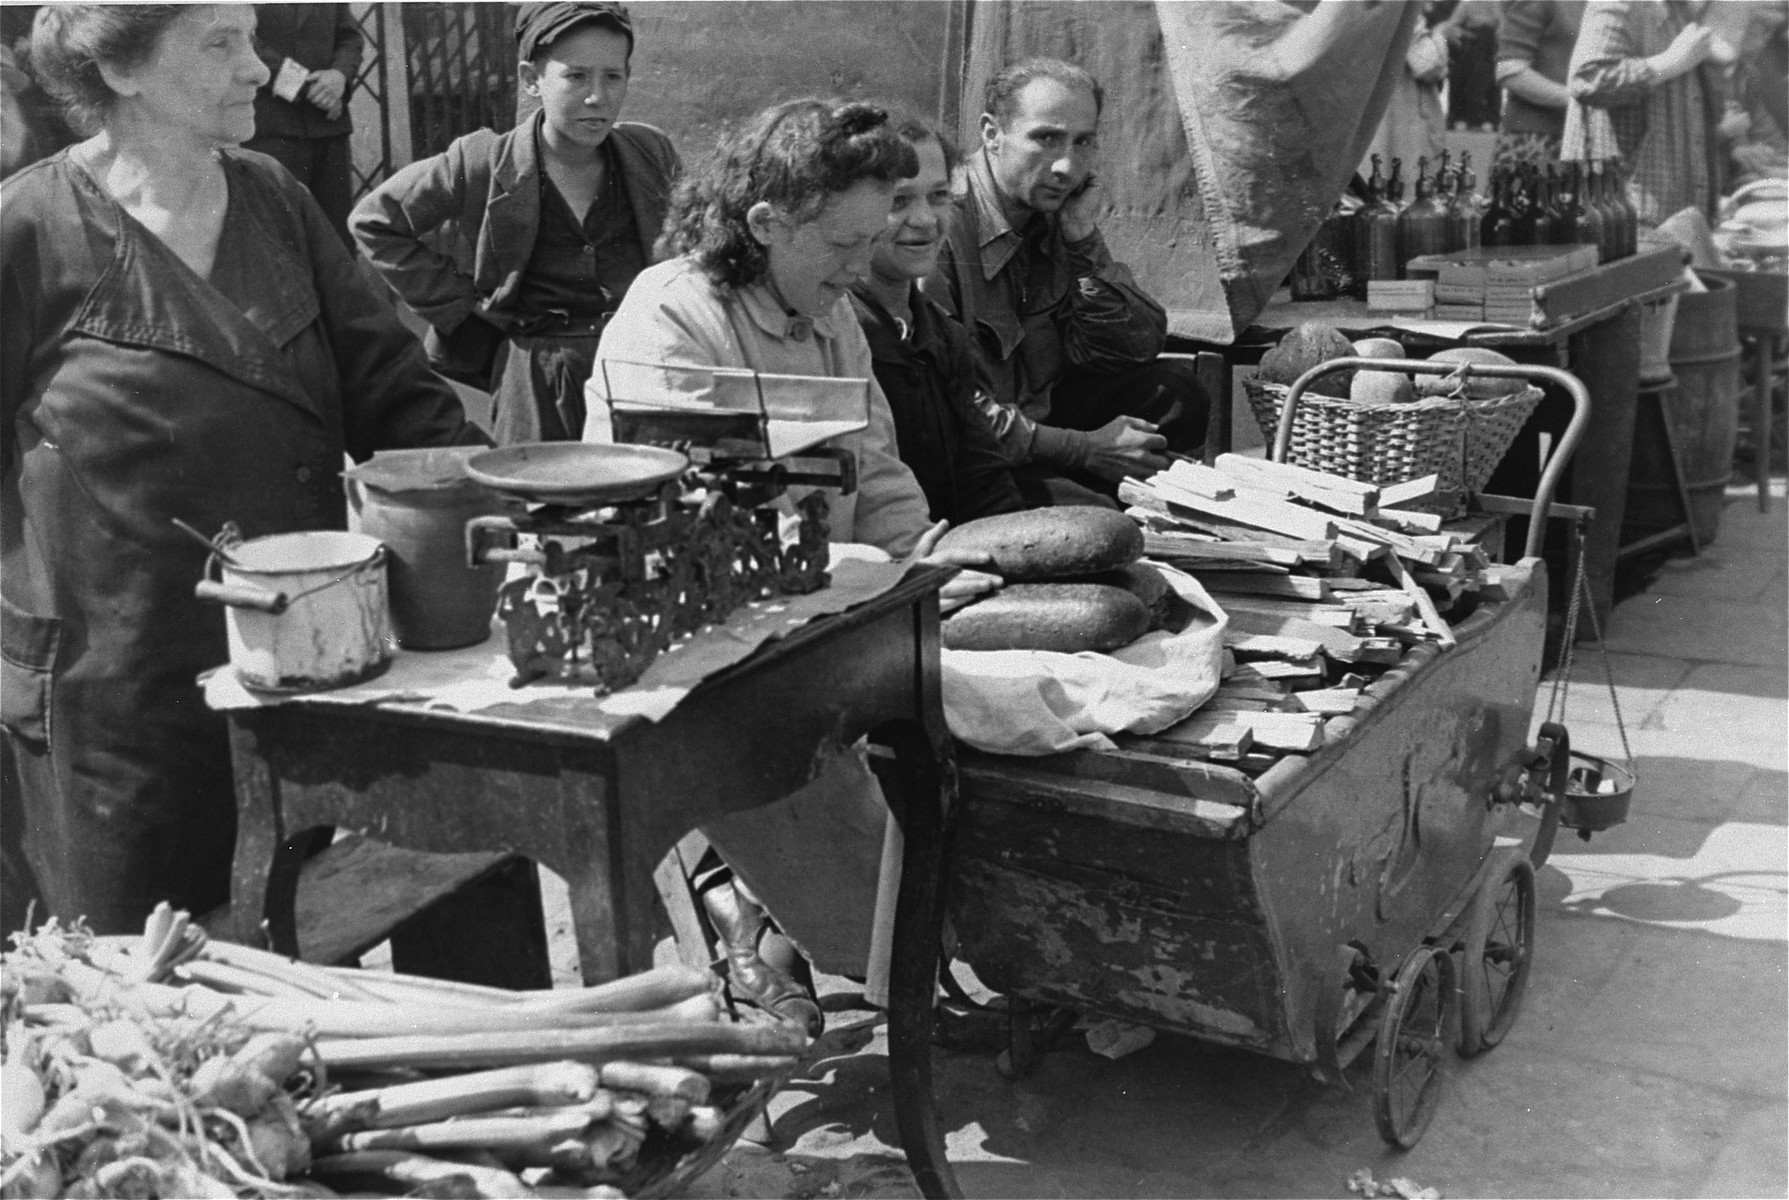 Street vendors in the Warsaw ghetto offer bread and kindling for sale.